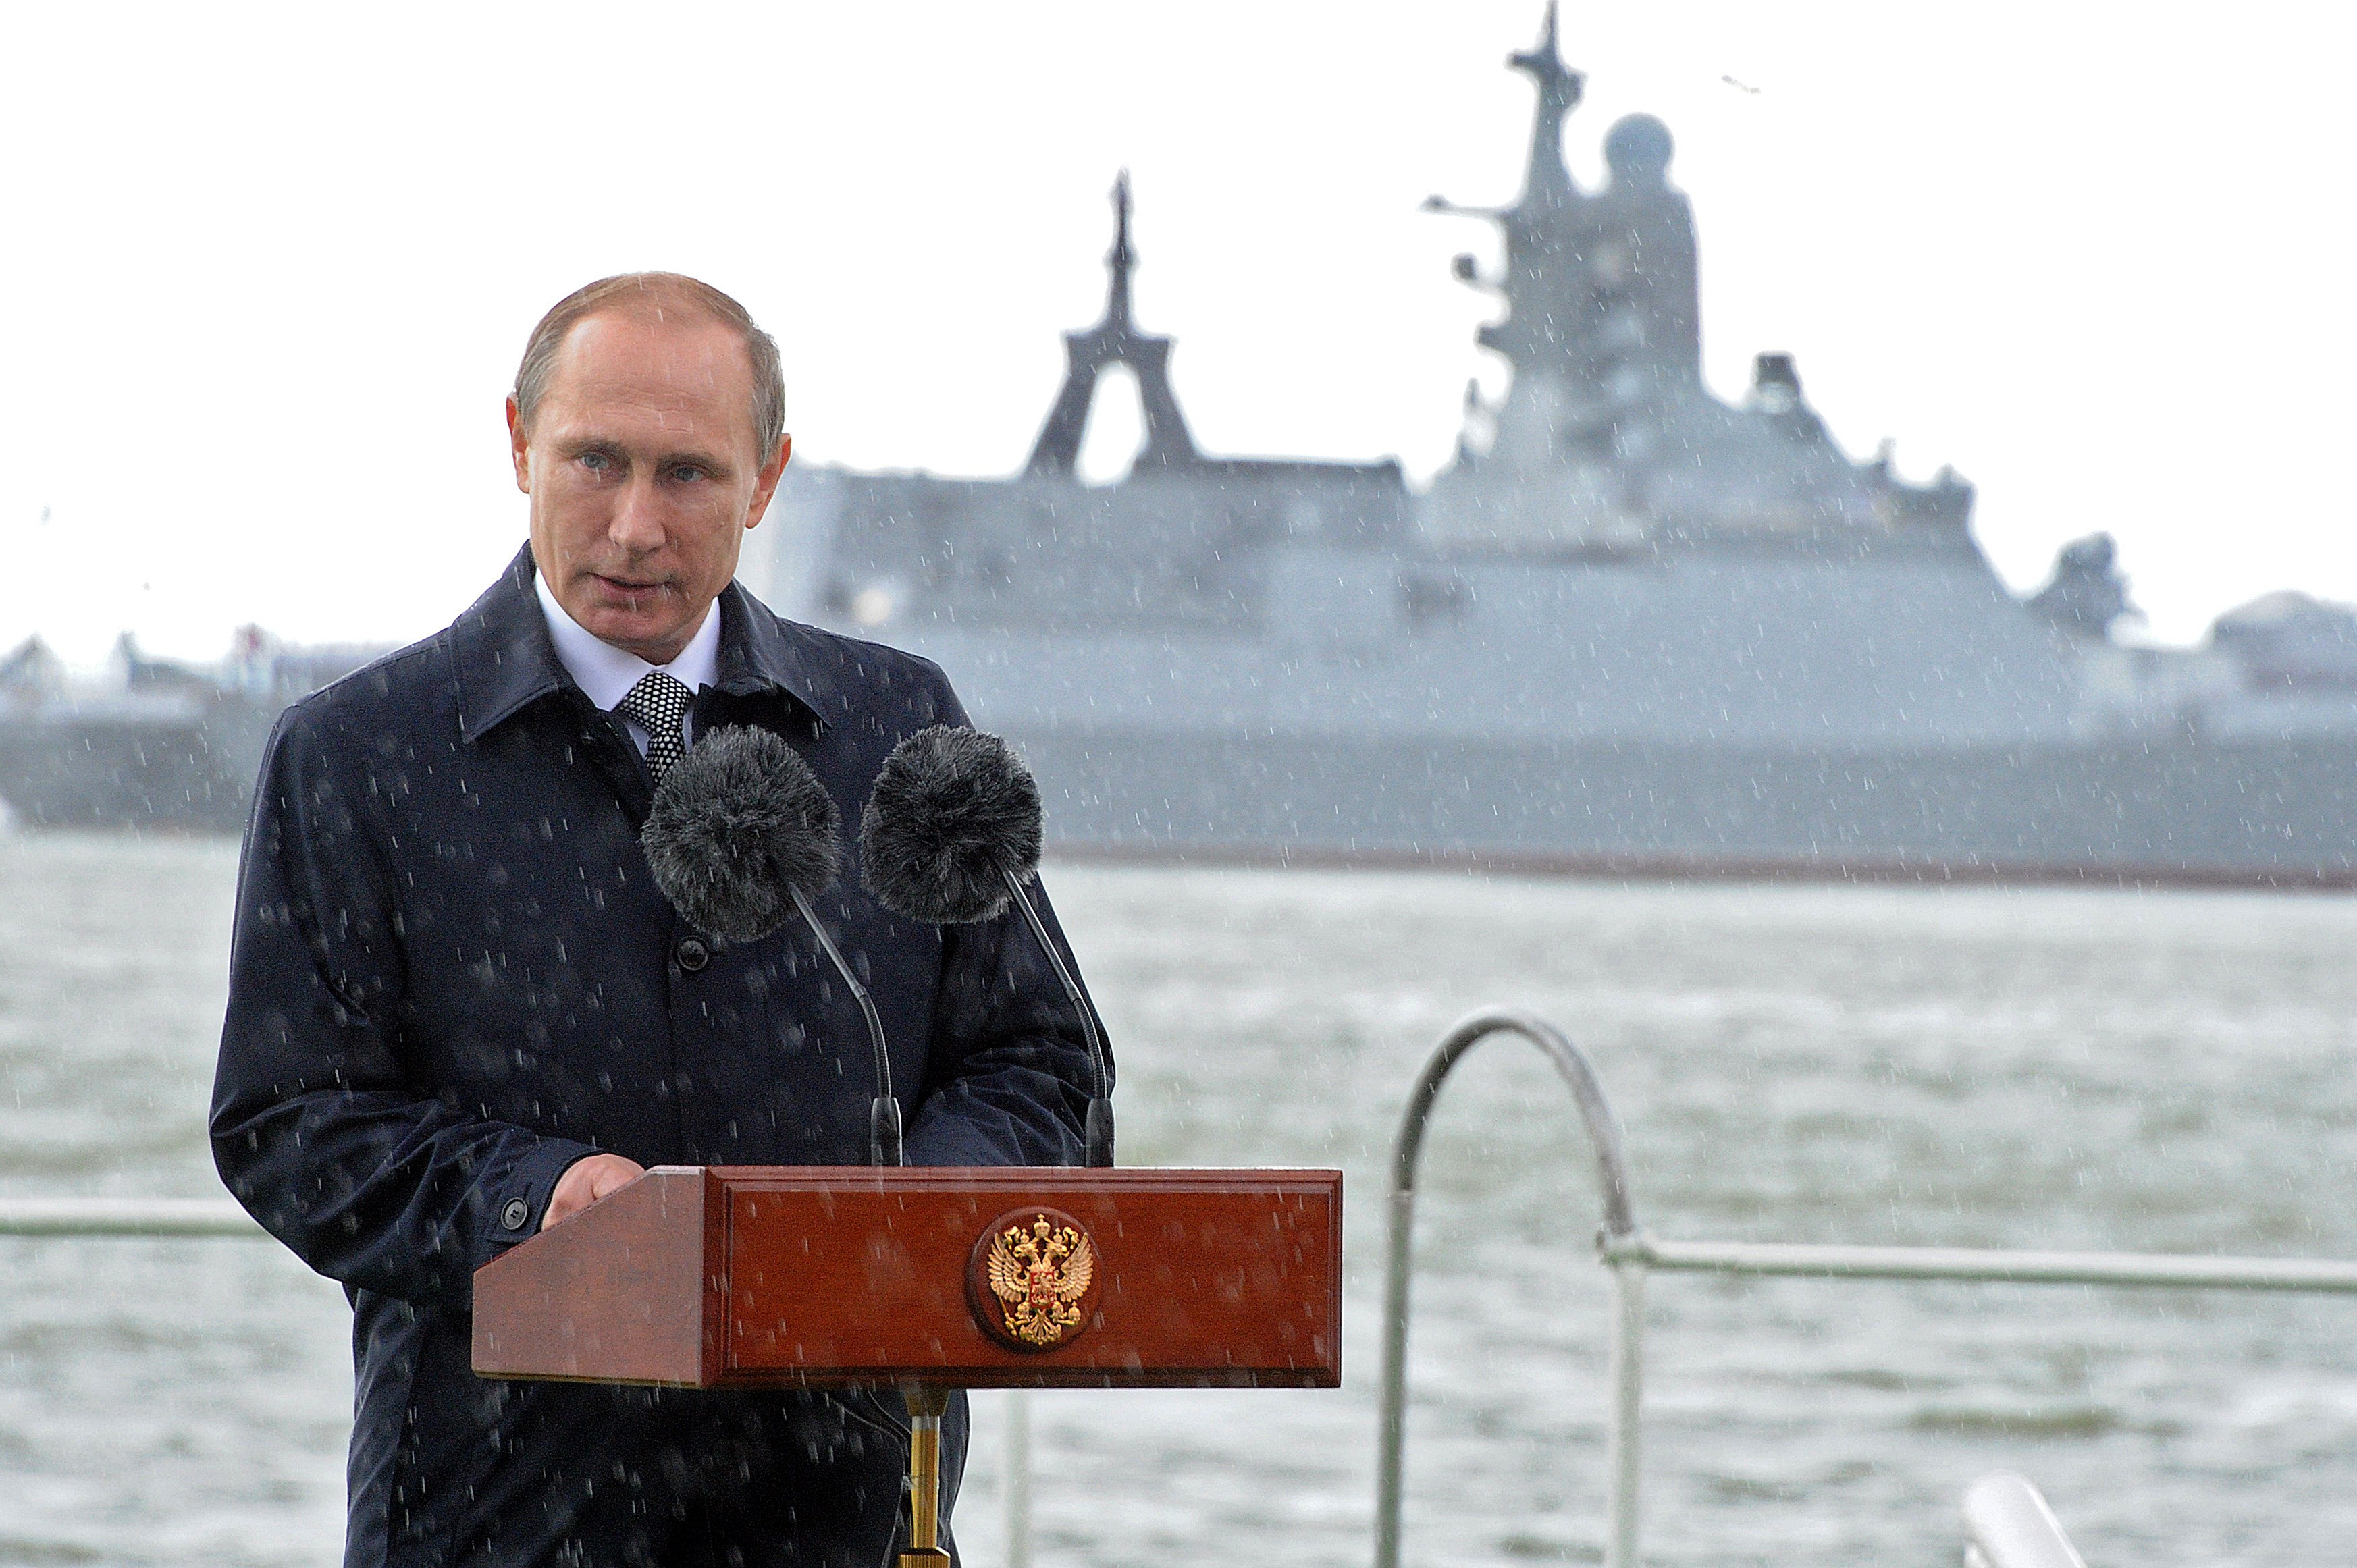 The move is the latest piece of sabre-rattling from Moscow, led by President Vladimir Putin